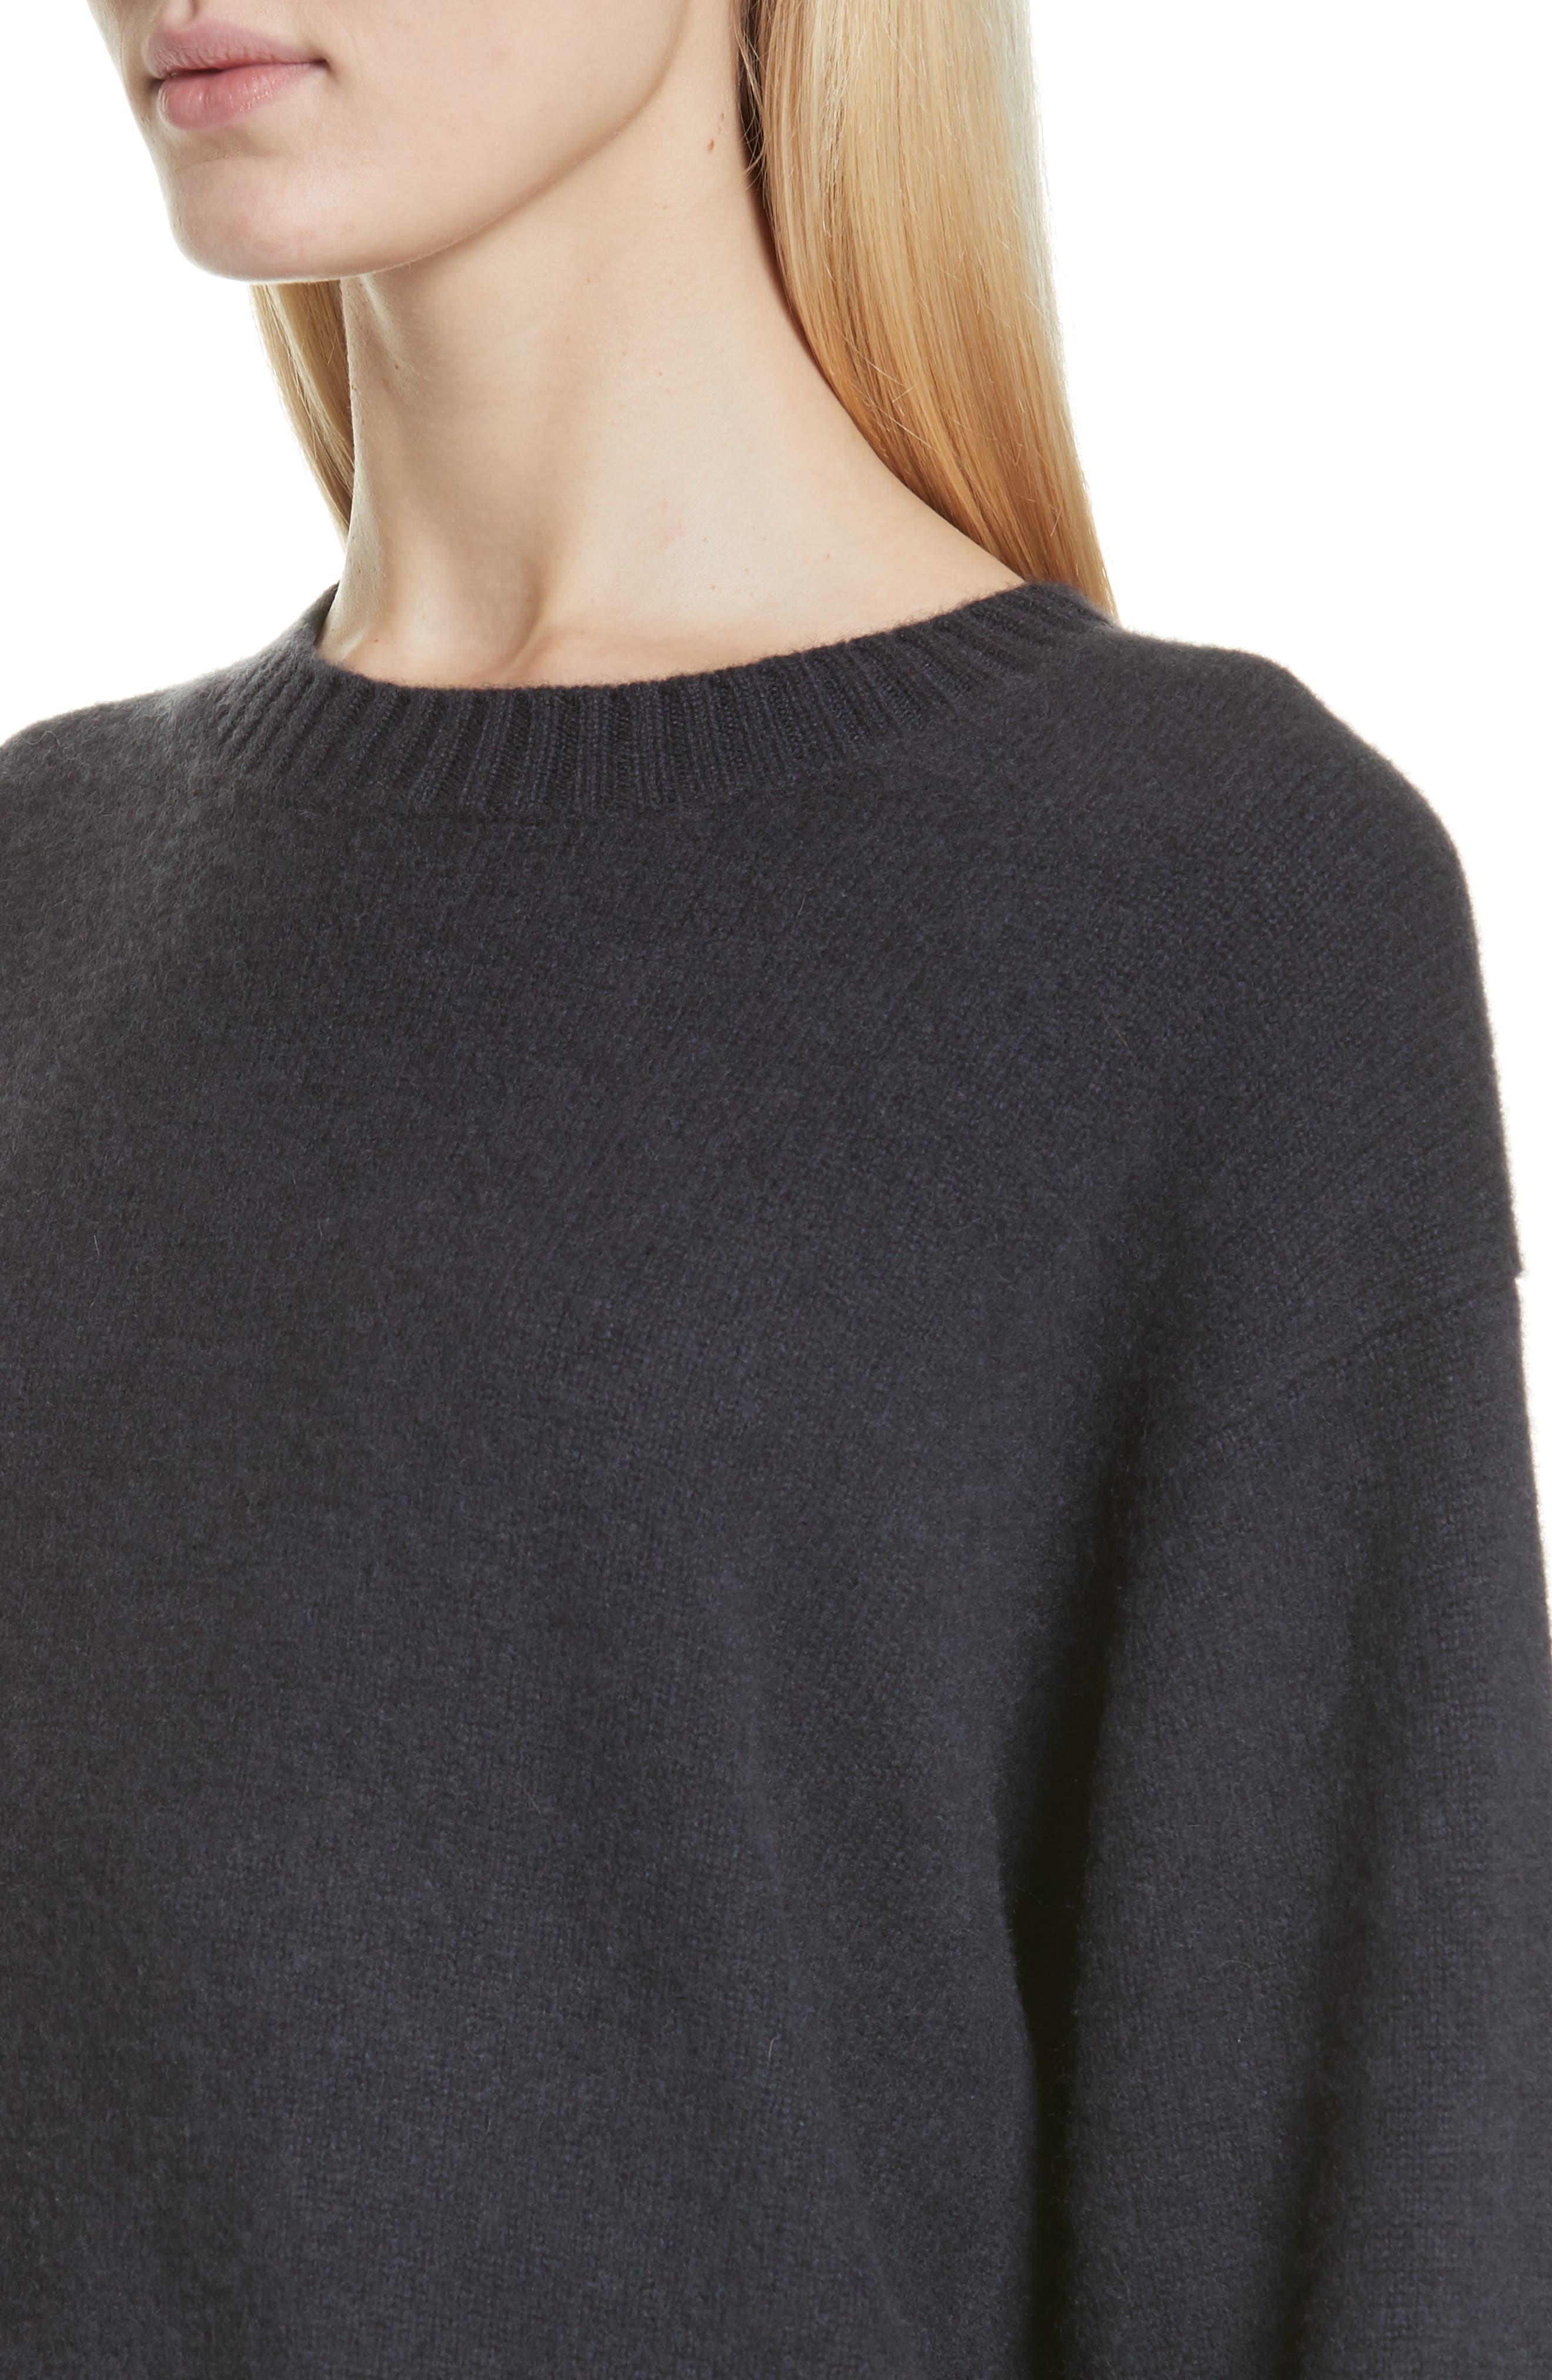 VINCE, Boxy Cashmere Sweater, Alternate thumbnail 4, color, OBSIDIAN